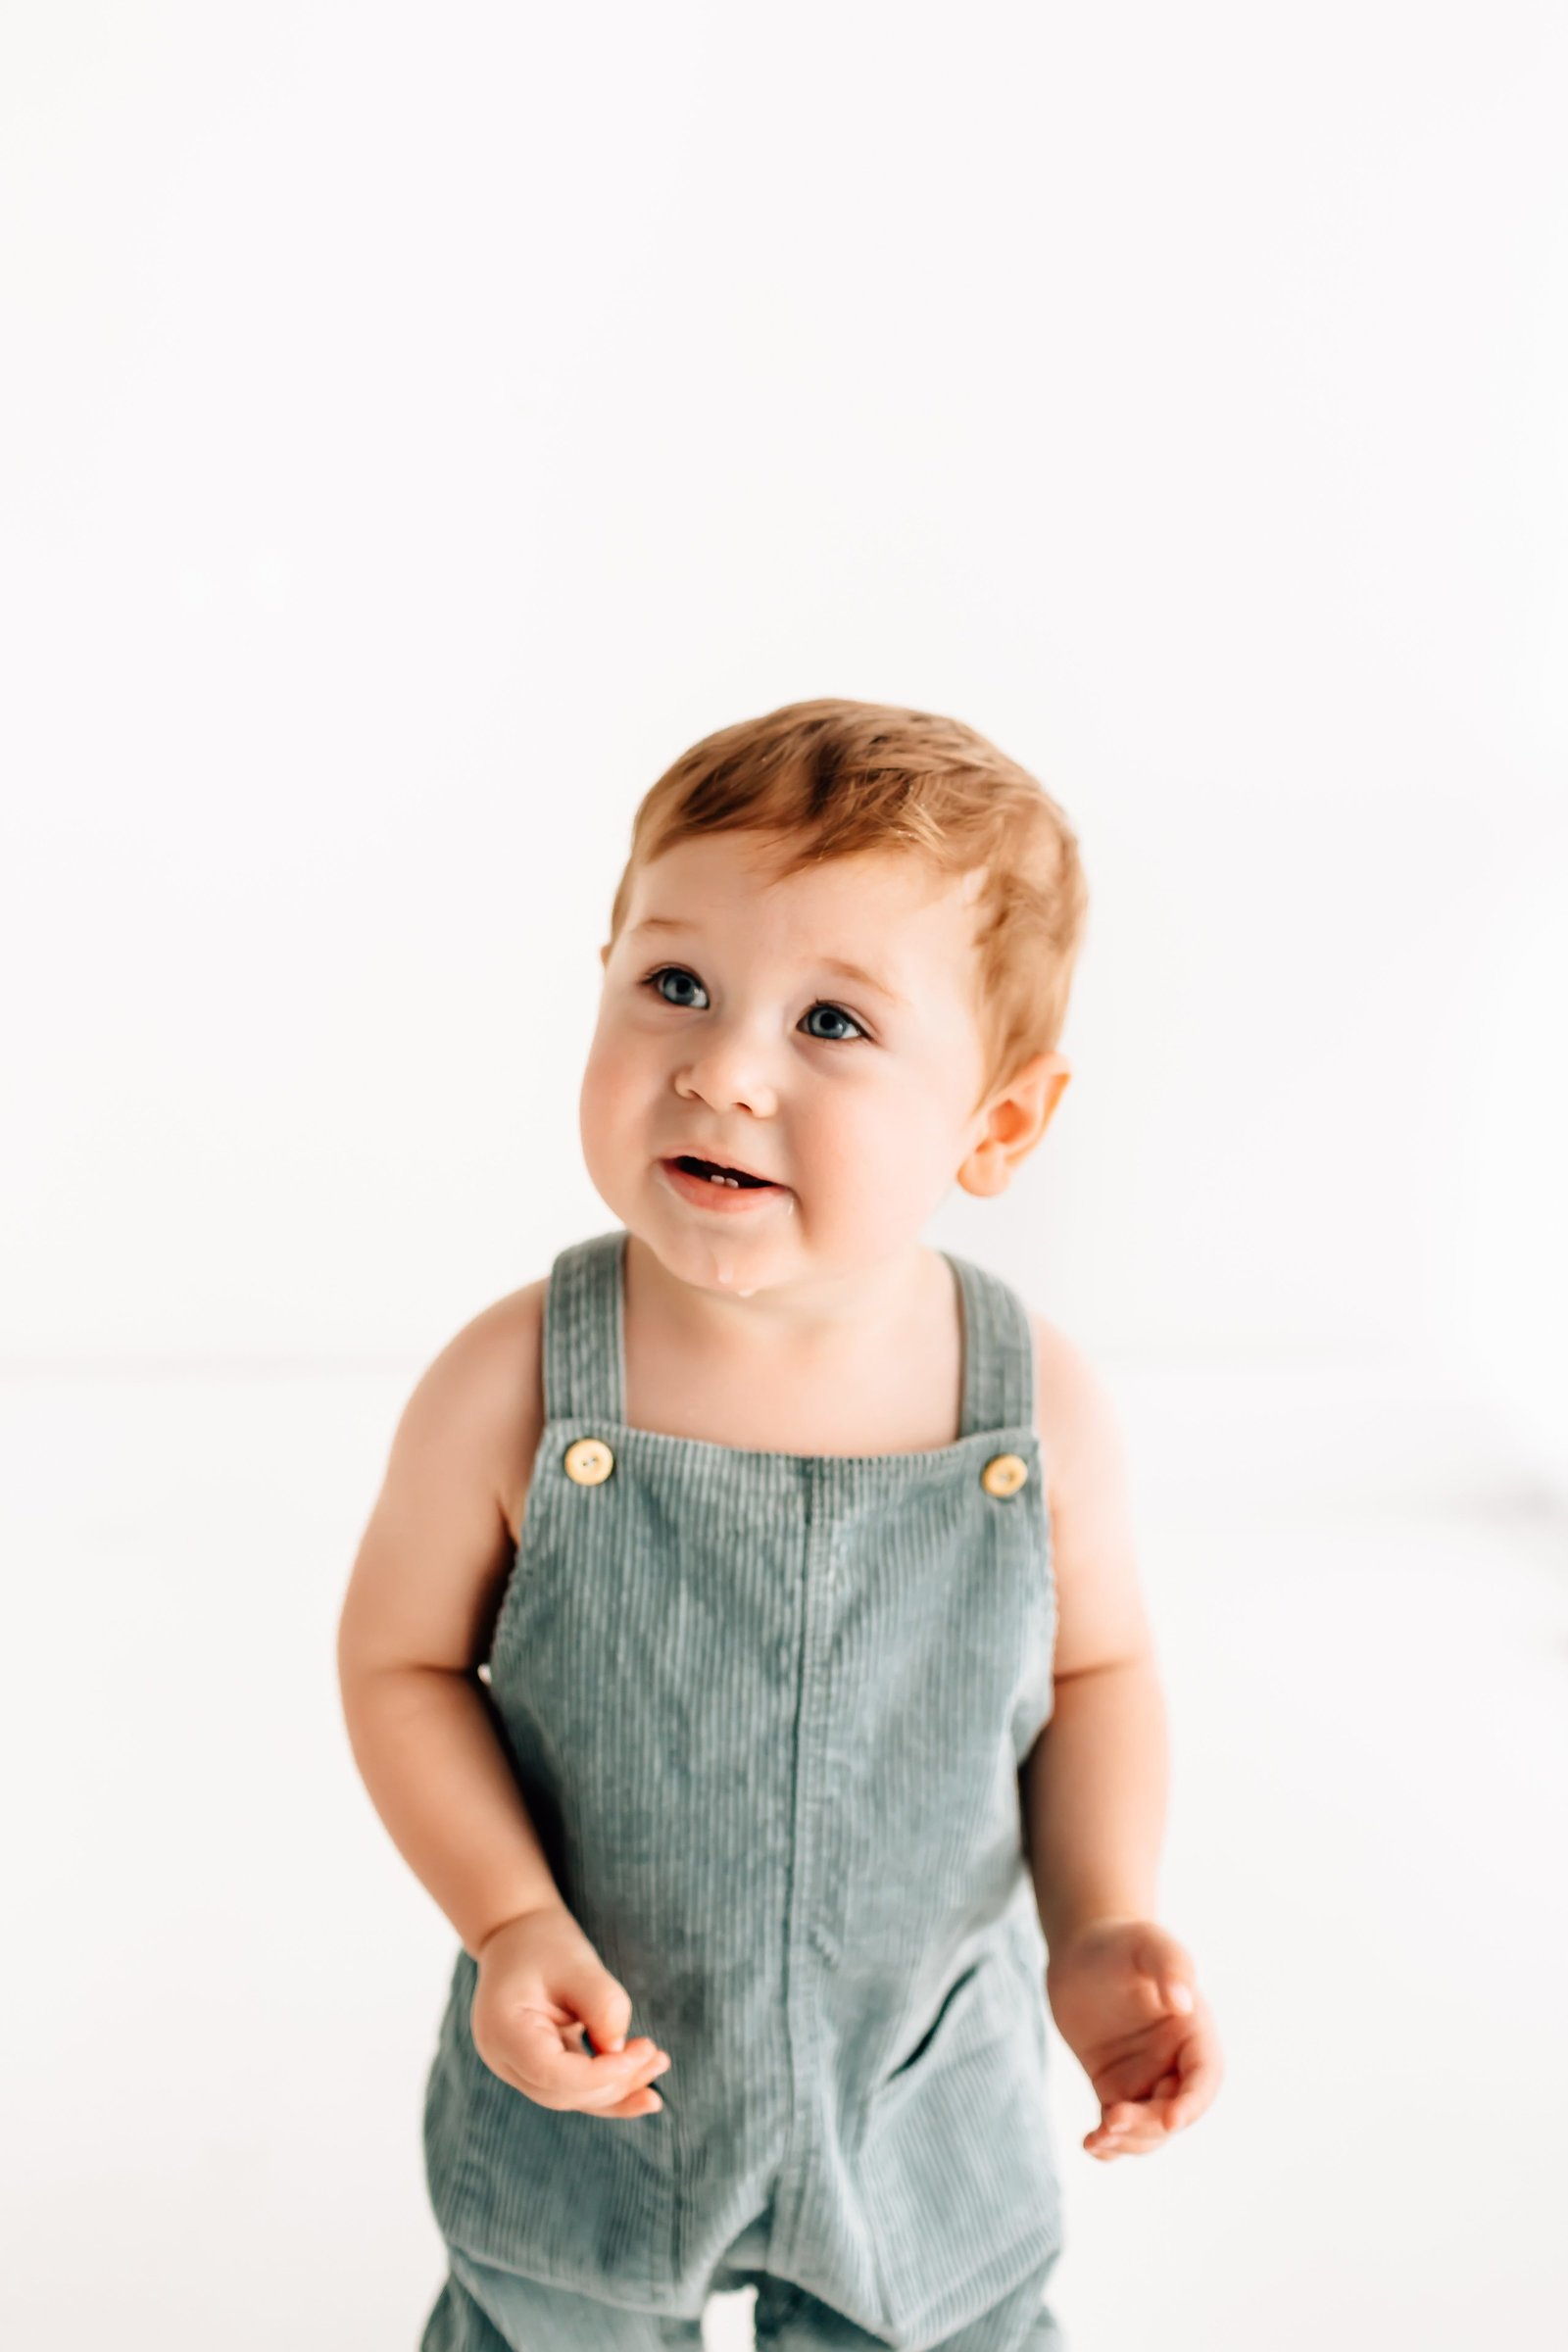 St_Louis_Baby_Photographer_Kelly_Laramore_Photography_102